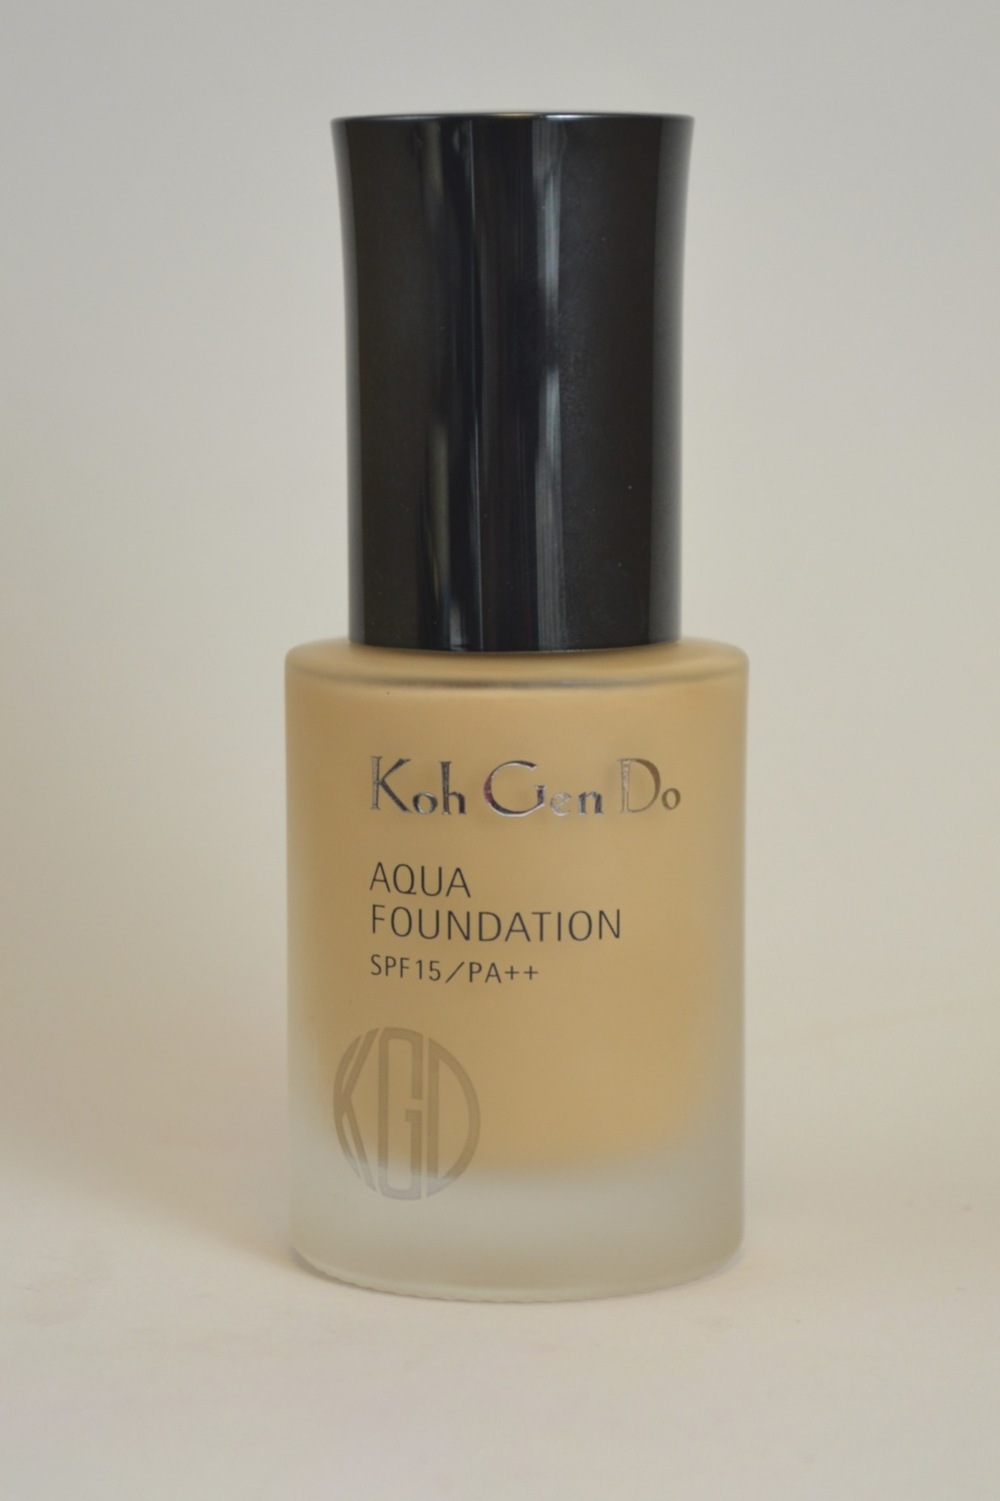 koh gen do aqua foundation review